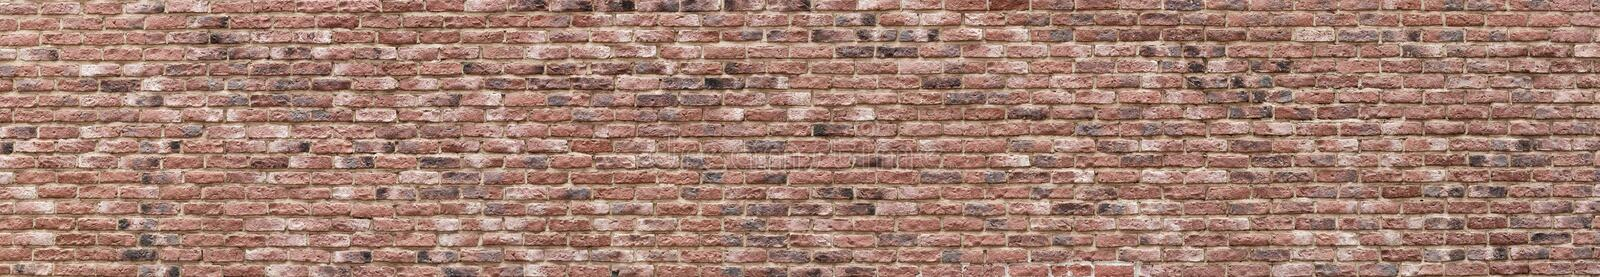 Panoramic high resolution vintage pink, black and red brick wall background texture. Architecture grunge detail abstract theme. Home, office or loft design stock photo